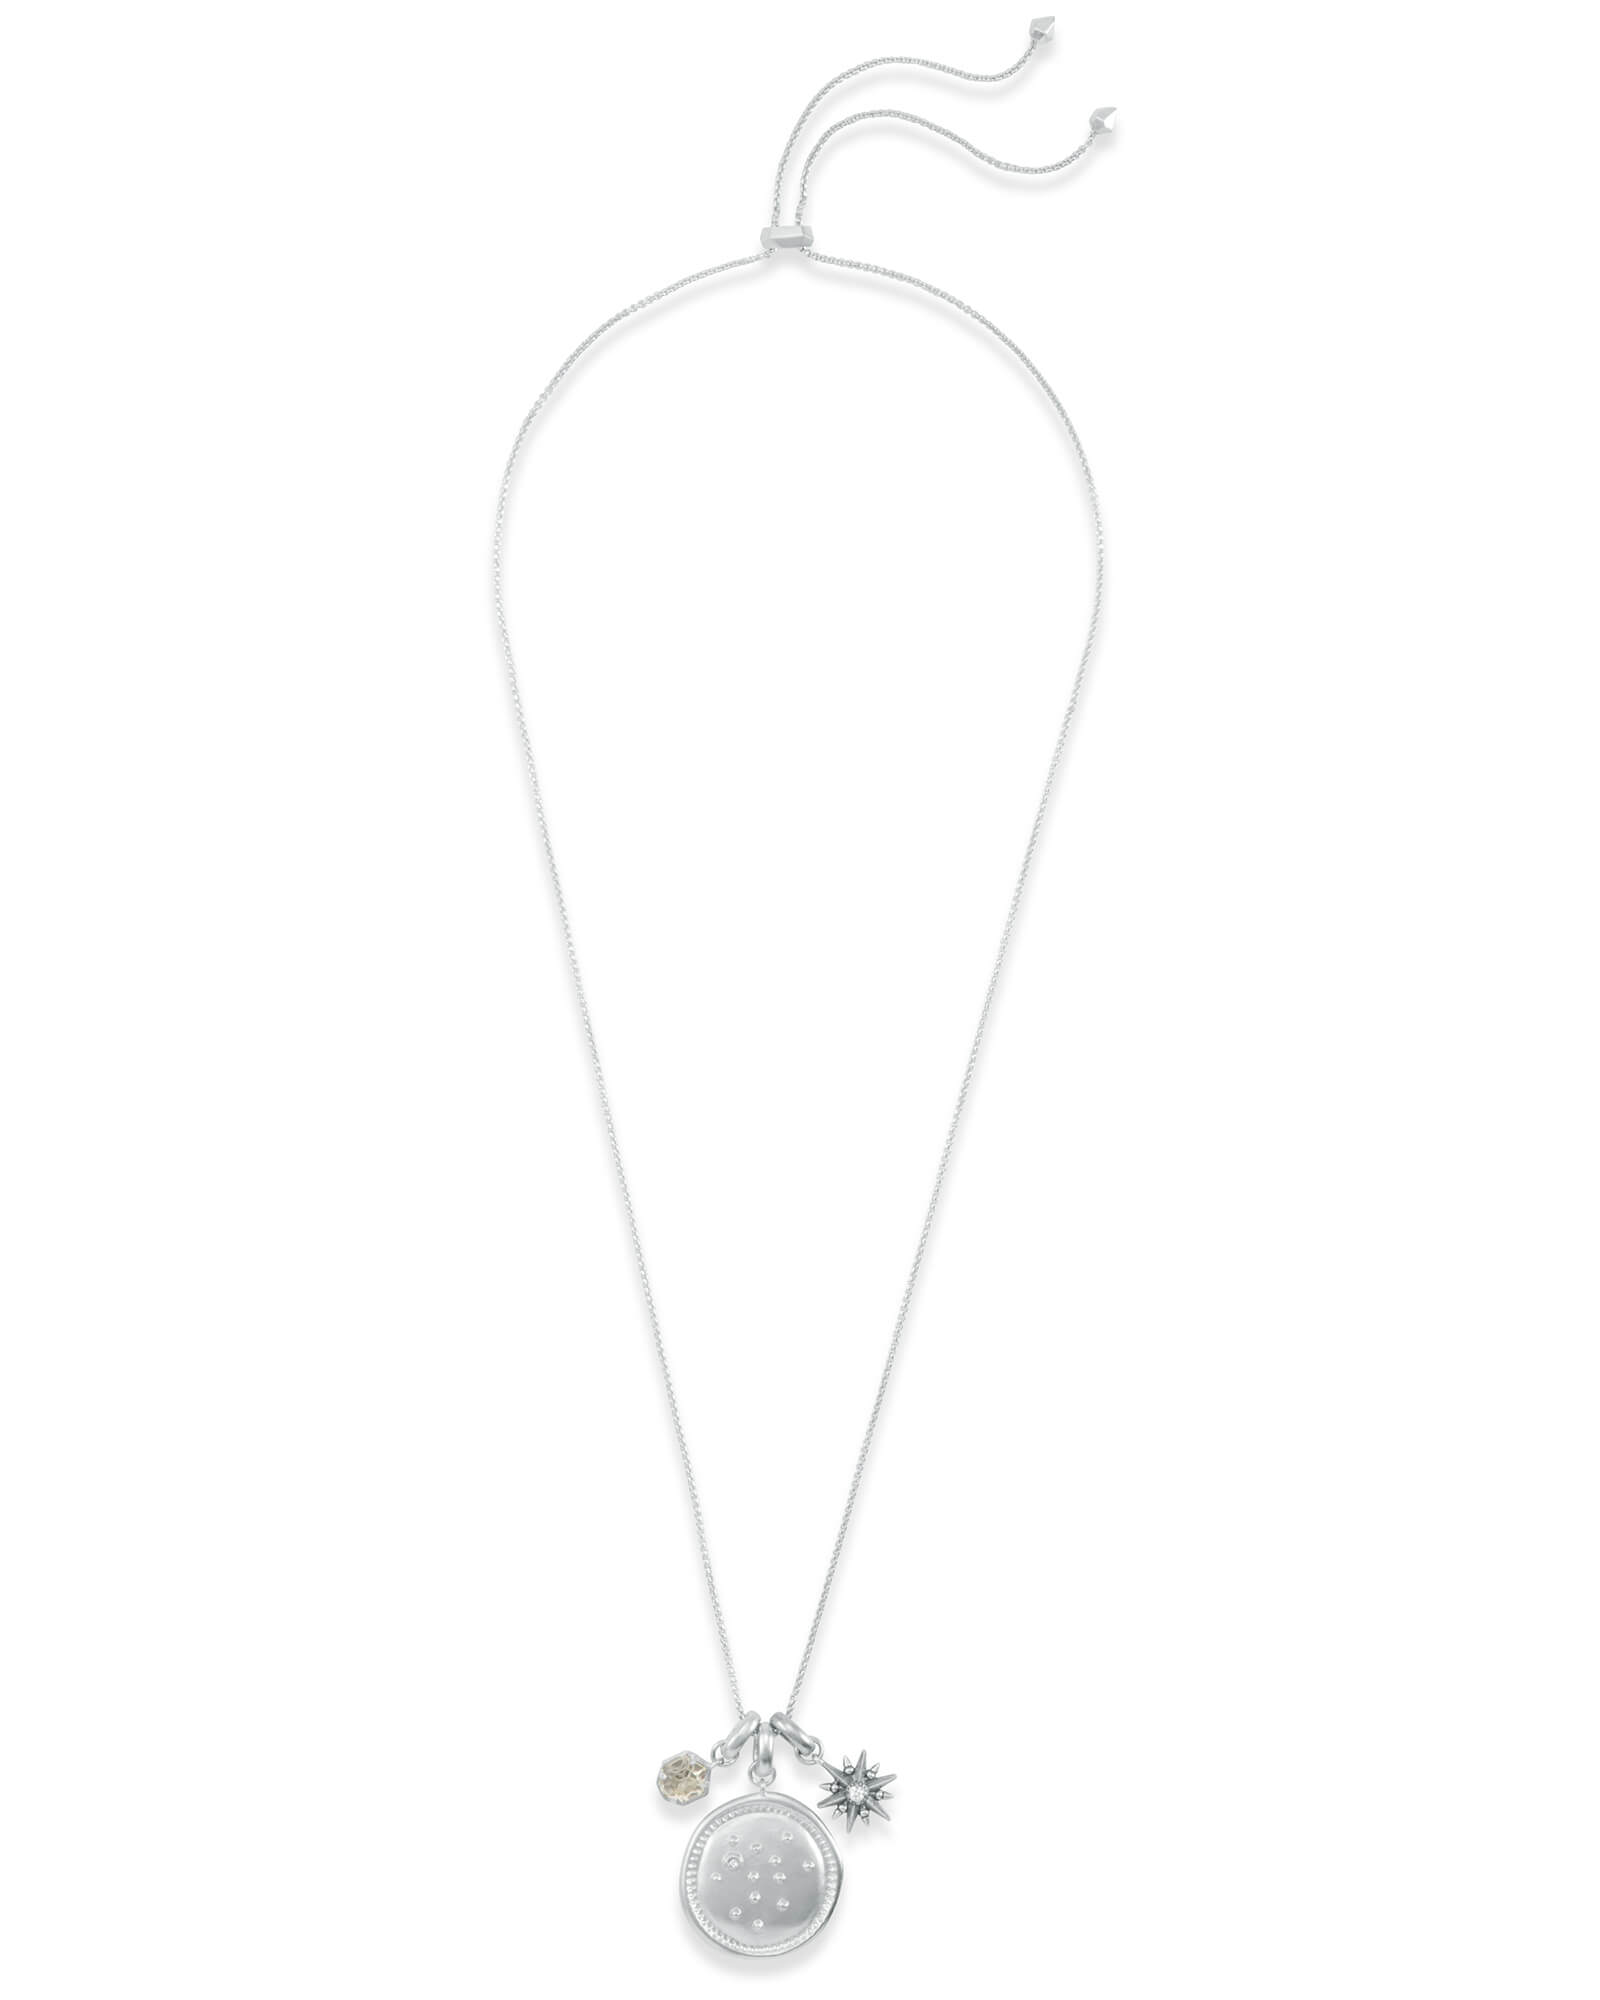 November Sagittarius Charm Necklace Set in Silver